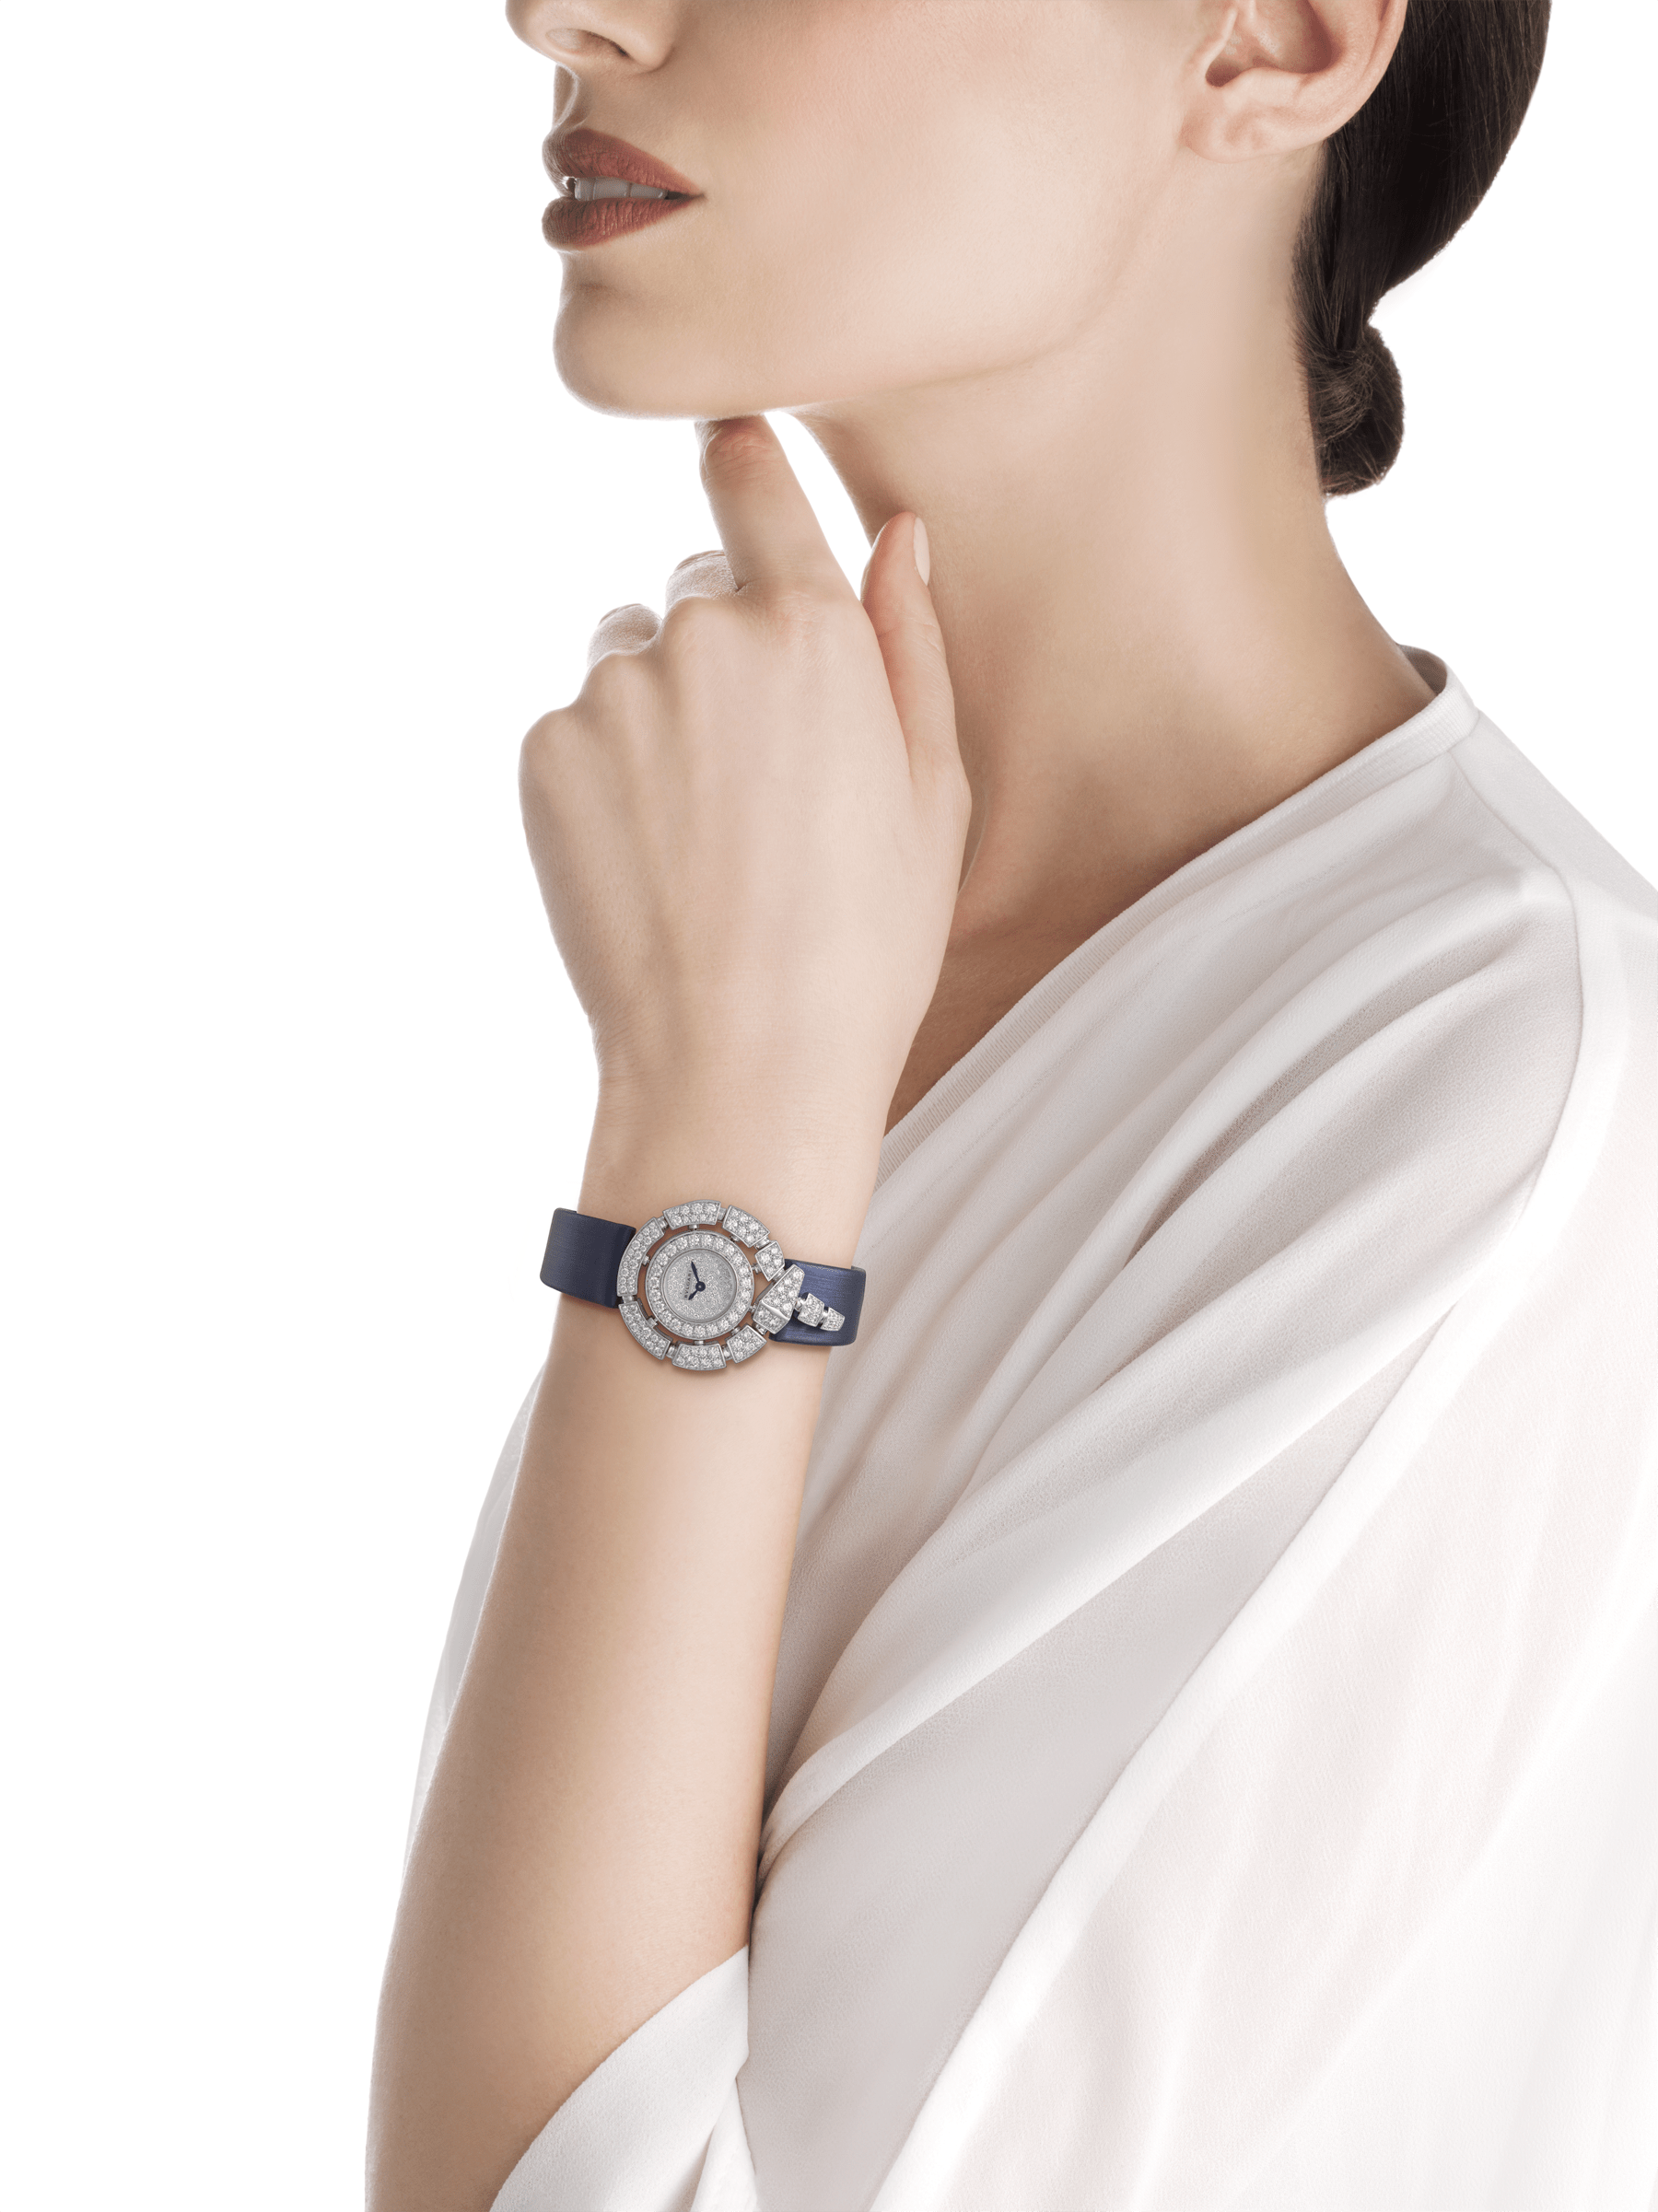 Serpenti Incantati watch with 18kt white gold case set with brilliant cut diamonds, snow-pavé diamond dial and blue satin bracelet. 102538 image 2